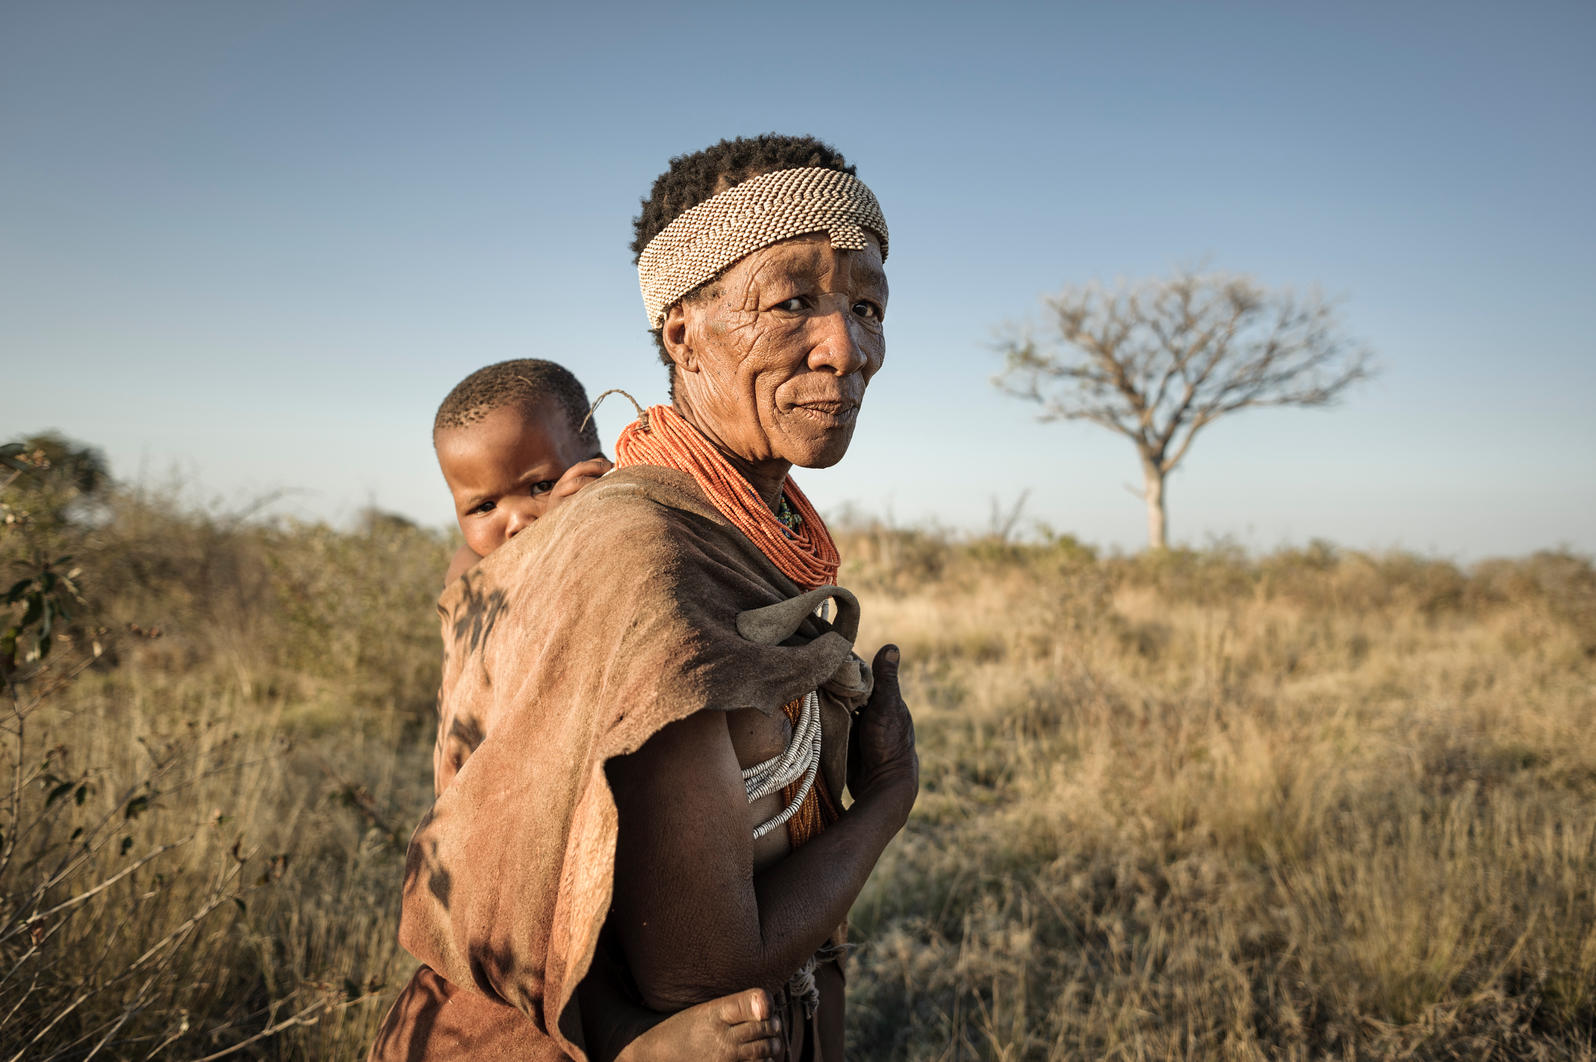 hunter gatherer Hunter-gatherer is an anthropological term used to describe human beings who obtain their food from the bounty of nature, hunting animals and gathering wild plants.